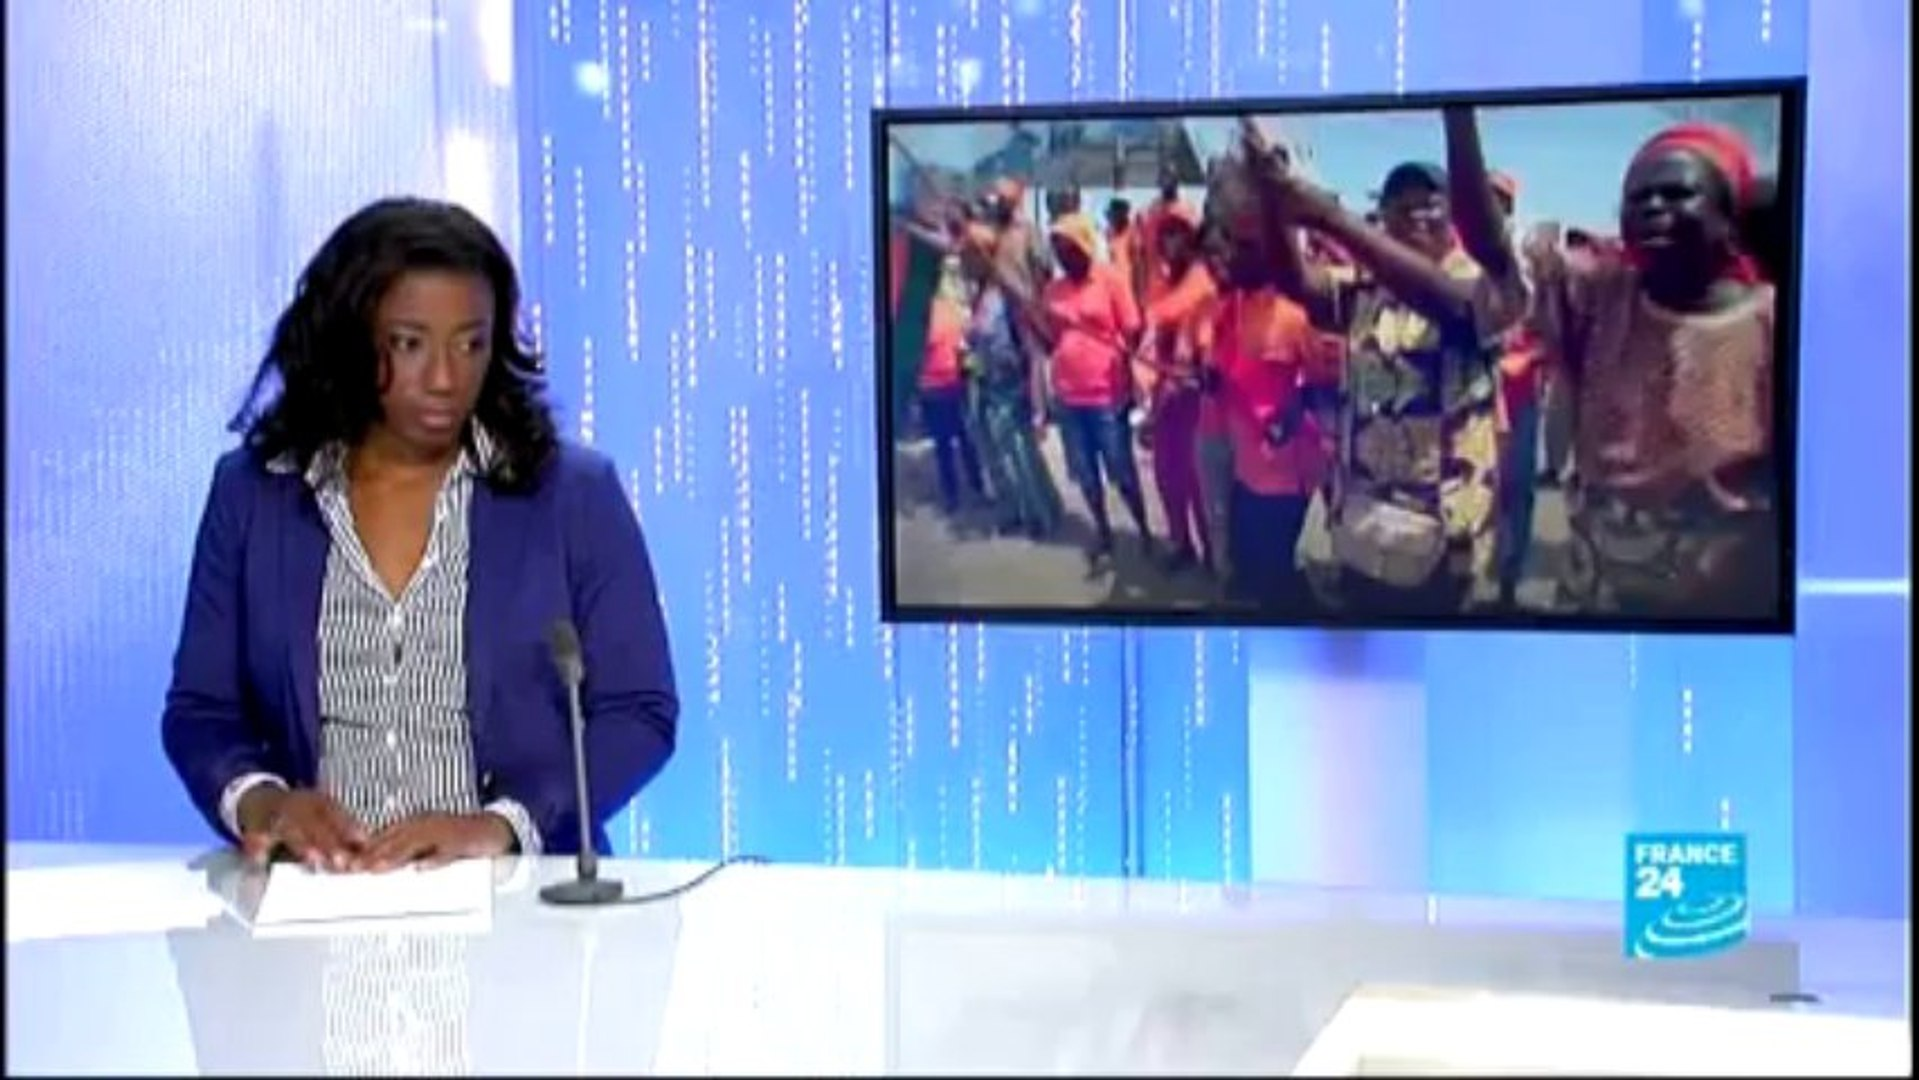 AFRICA NEWS - French priest kidnapped in Cameroon